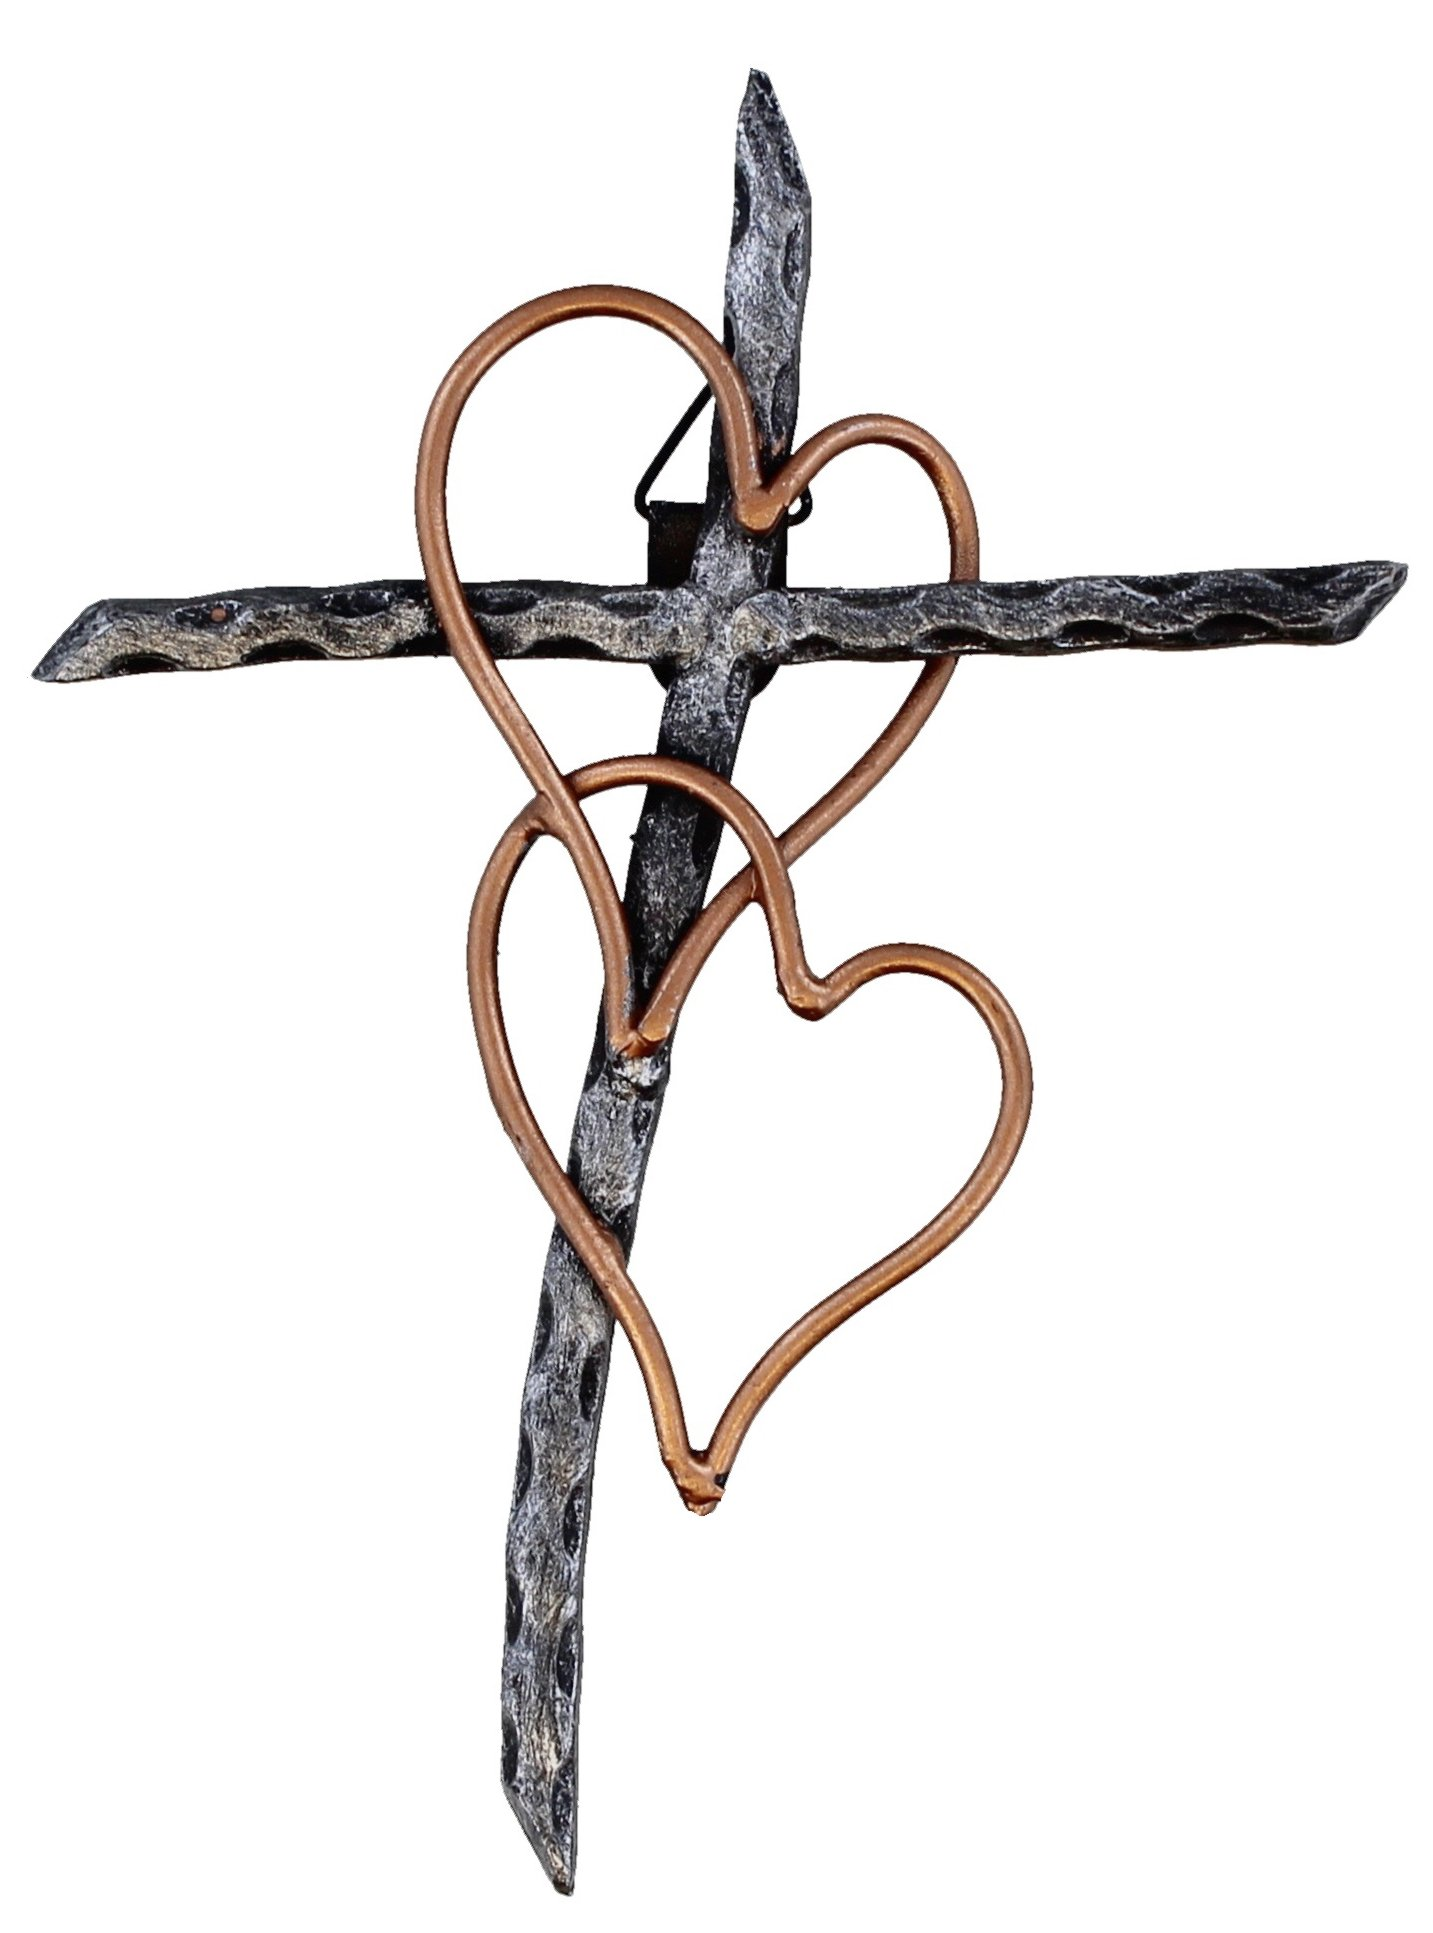 Entwined Hearts Decorative Welded Metal Wall Cross - Two Hearts Joined - Small Version